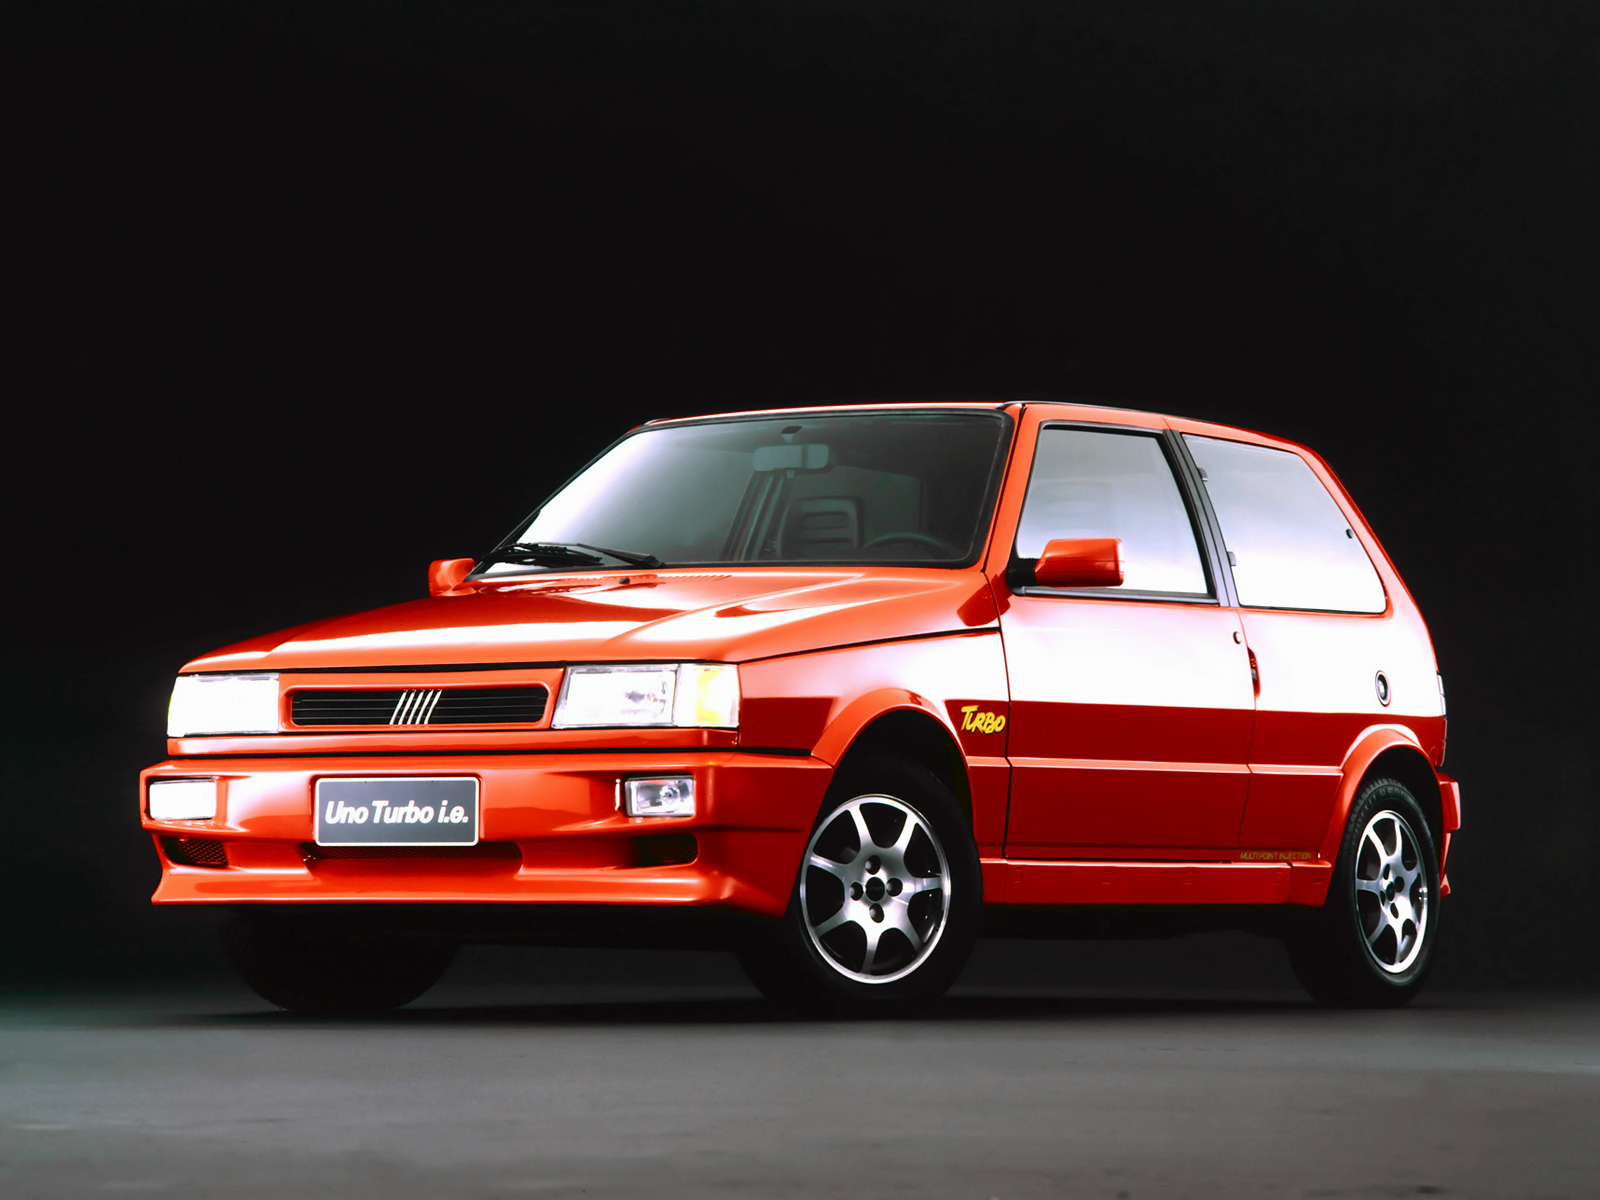 20 Years Ago Fiat Launches Brazilian Spec Uno Turbo I E